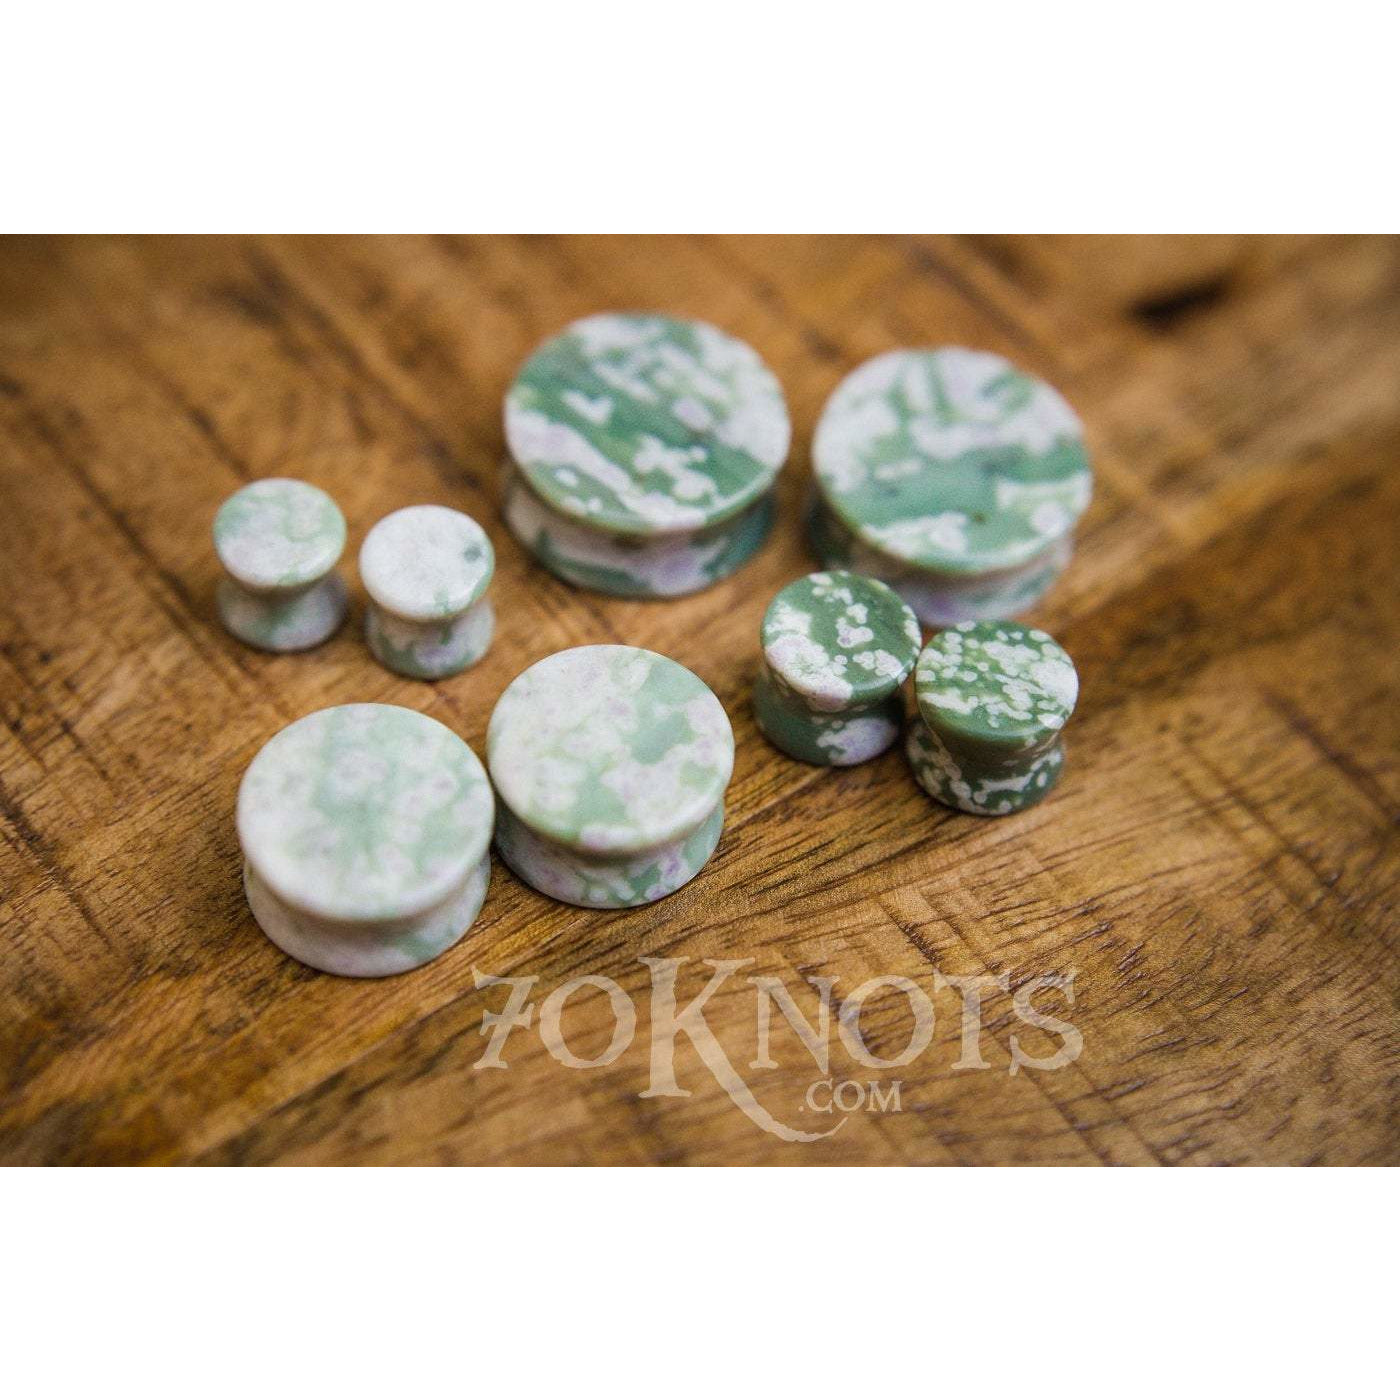 Peace Jade Double Flared Plugs, Pair - 70 Knots